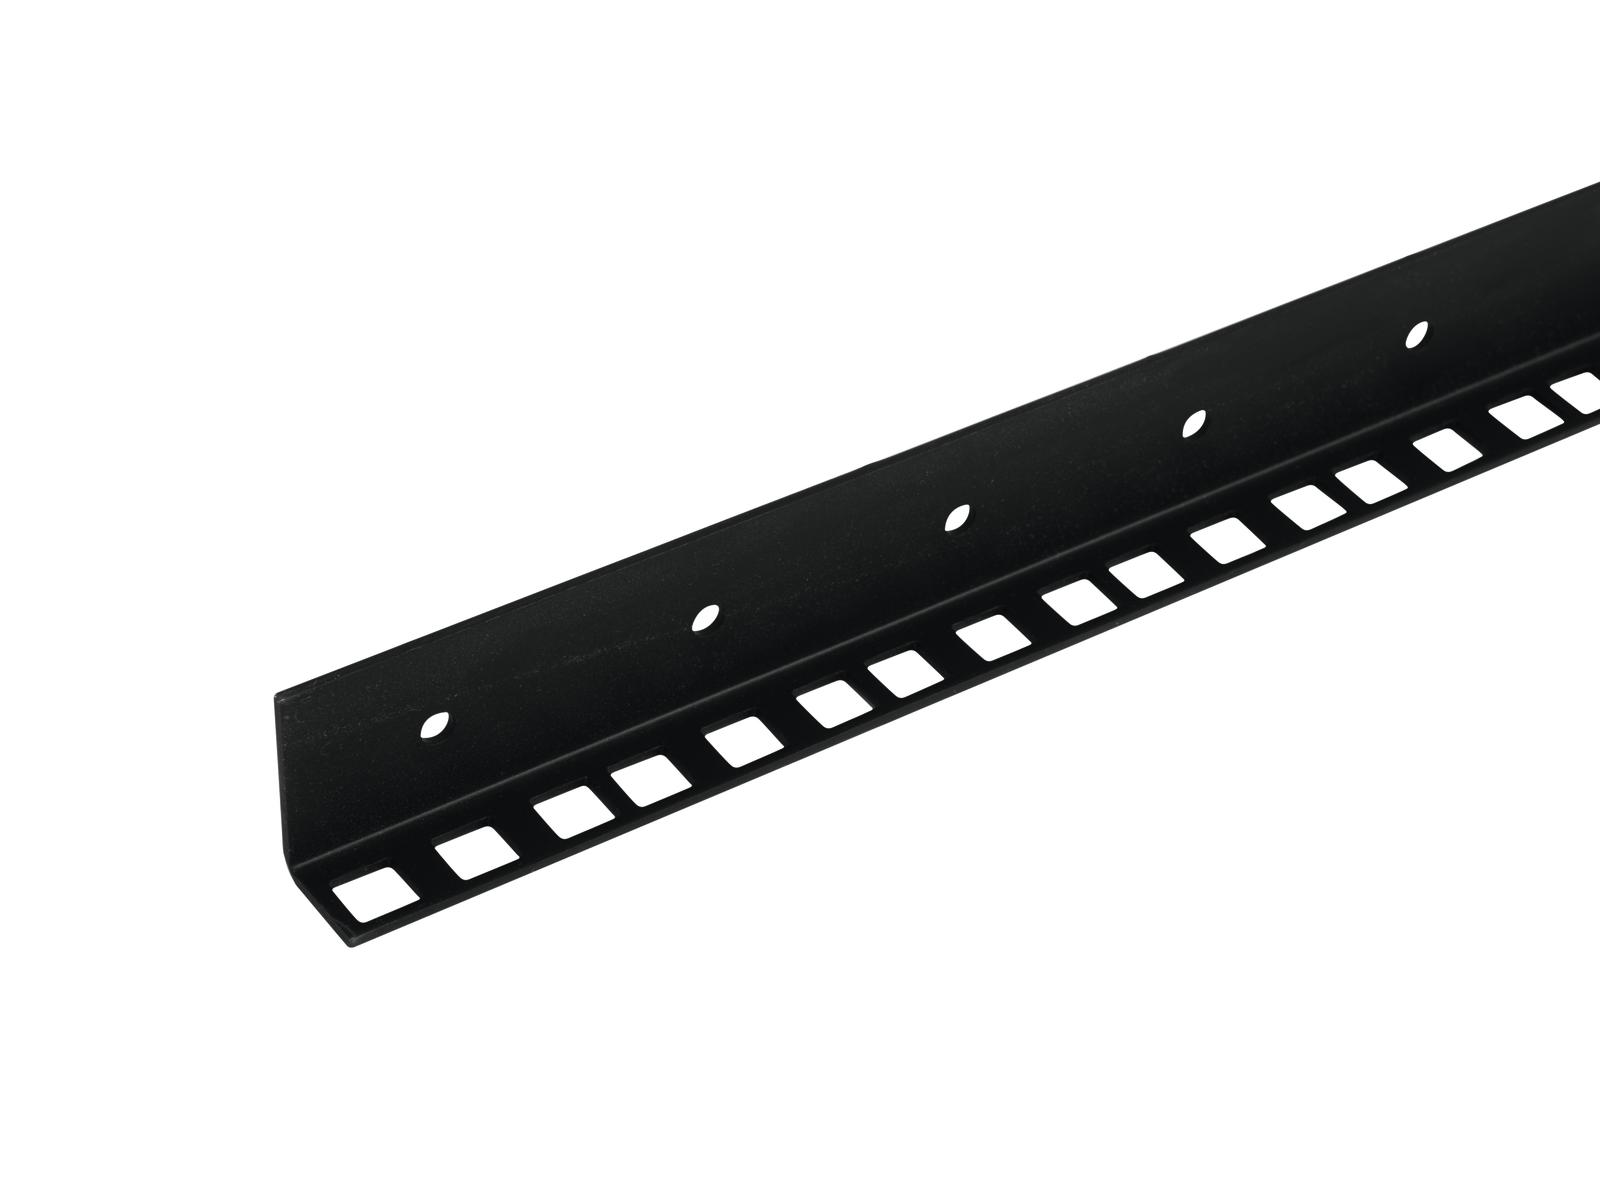 ACCESSORIO Rack rail AM-6 2 metri